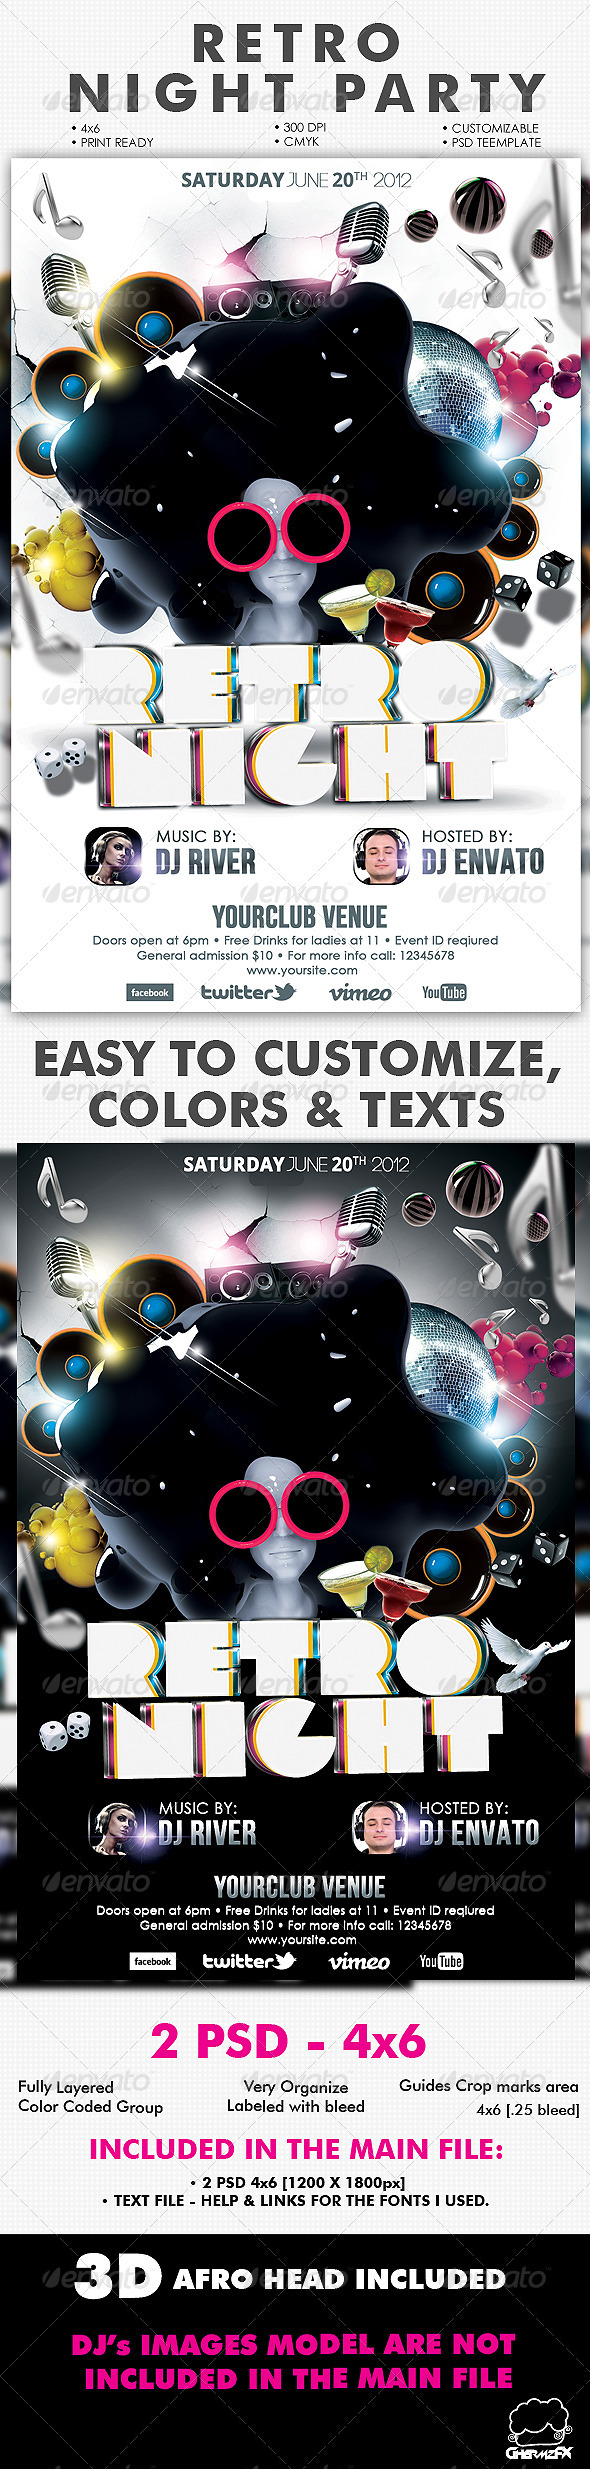 GraphicRiver Retro Night Party Flyer Template 2407847